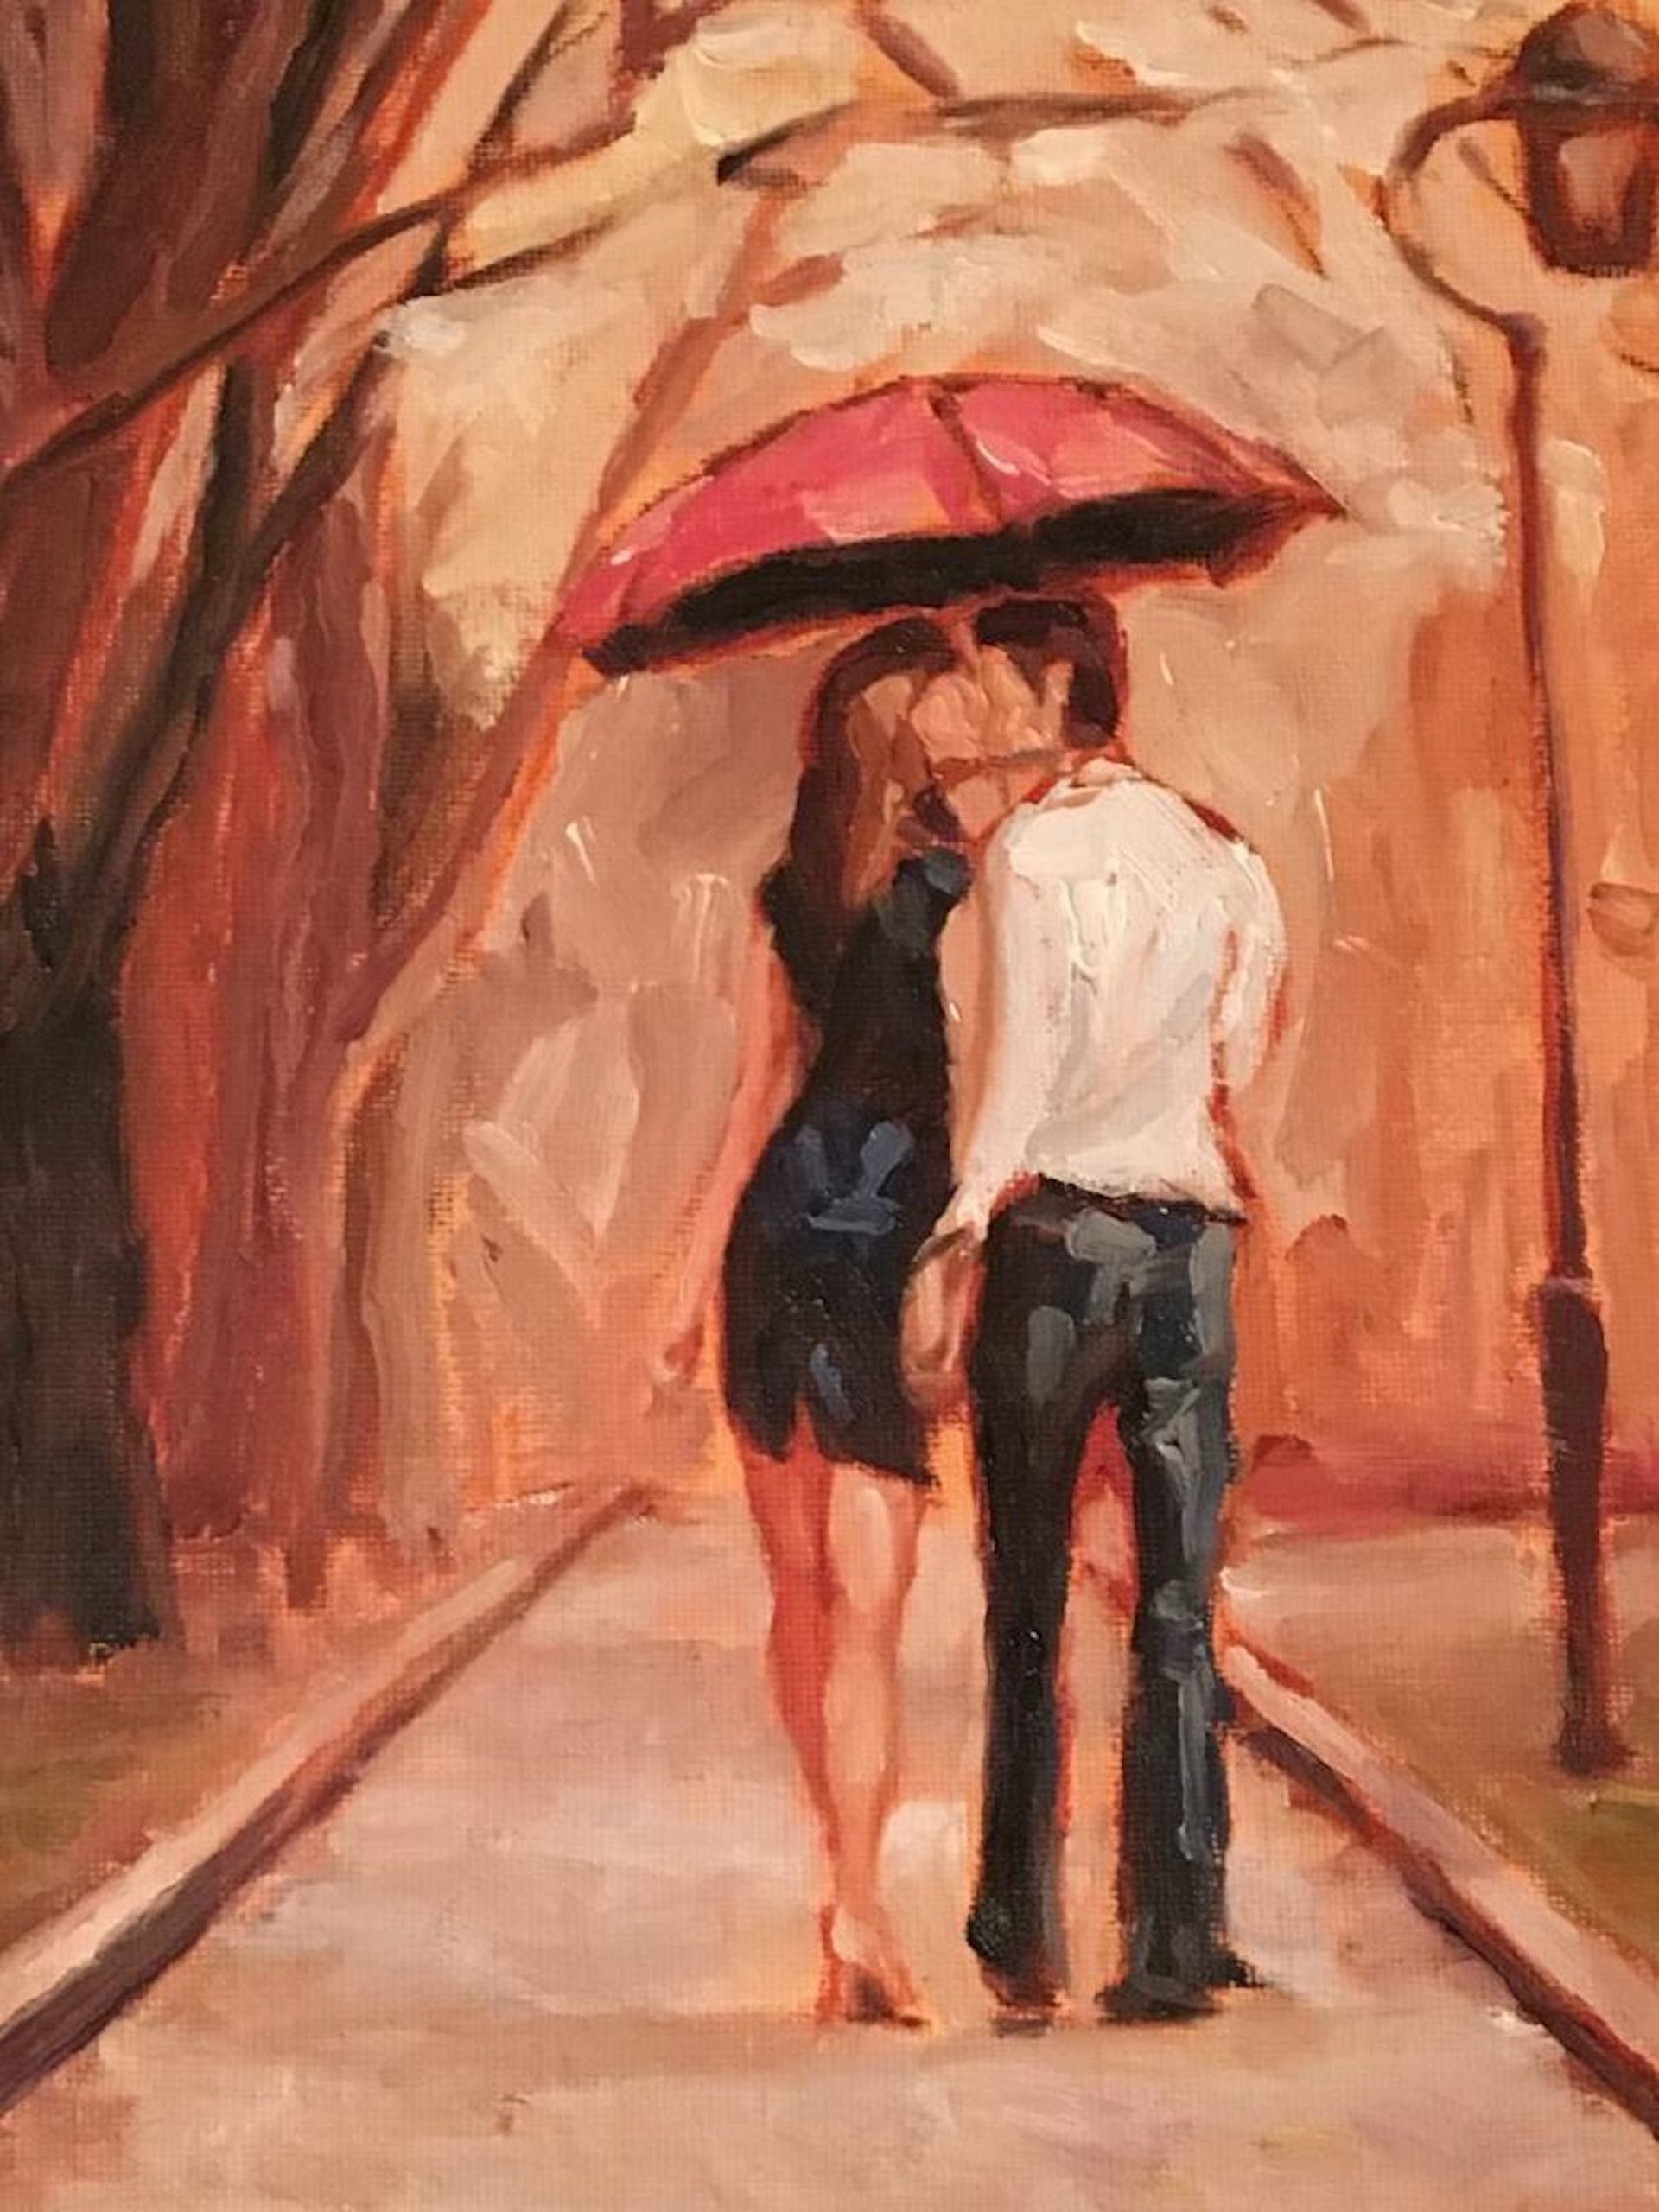 A paining of a man and woman kissing under a red umbrella